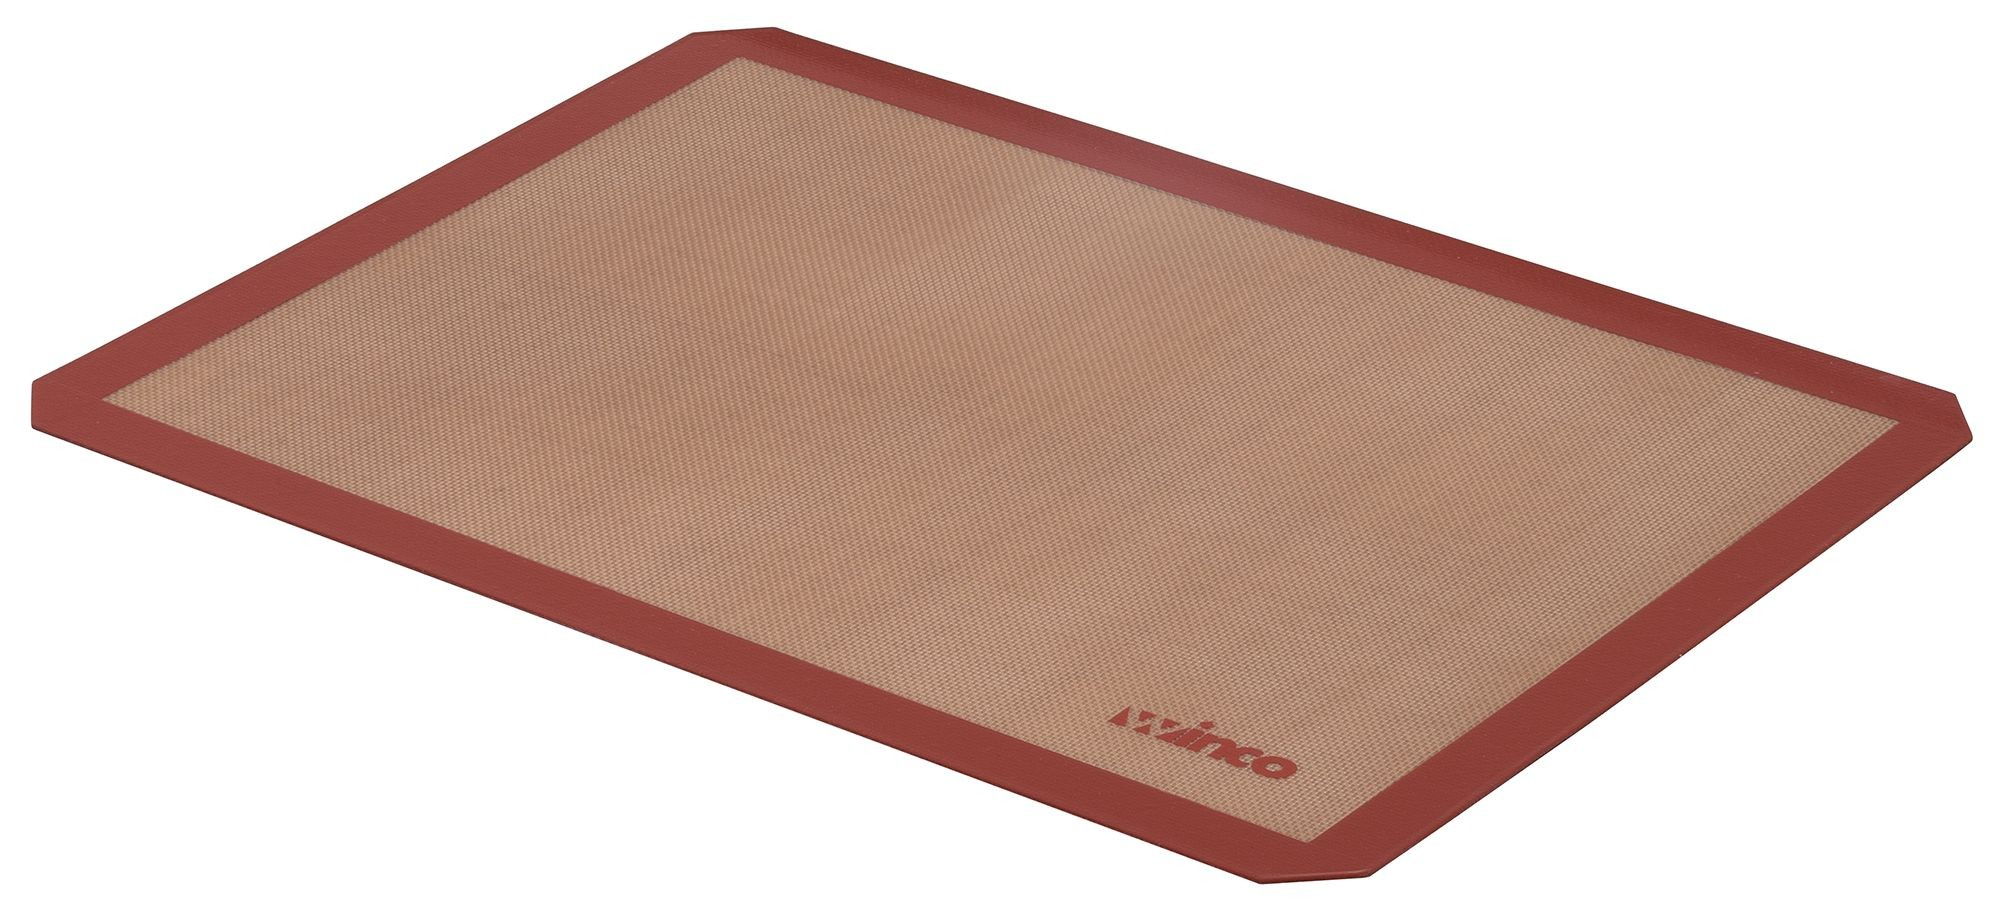 "Winco sbs-24 Silicone Square Baking Mat 16-3/8"" x 24-1/2"""